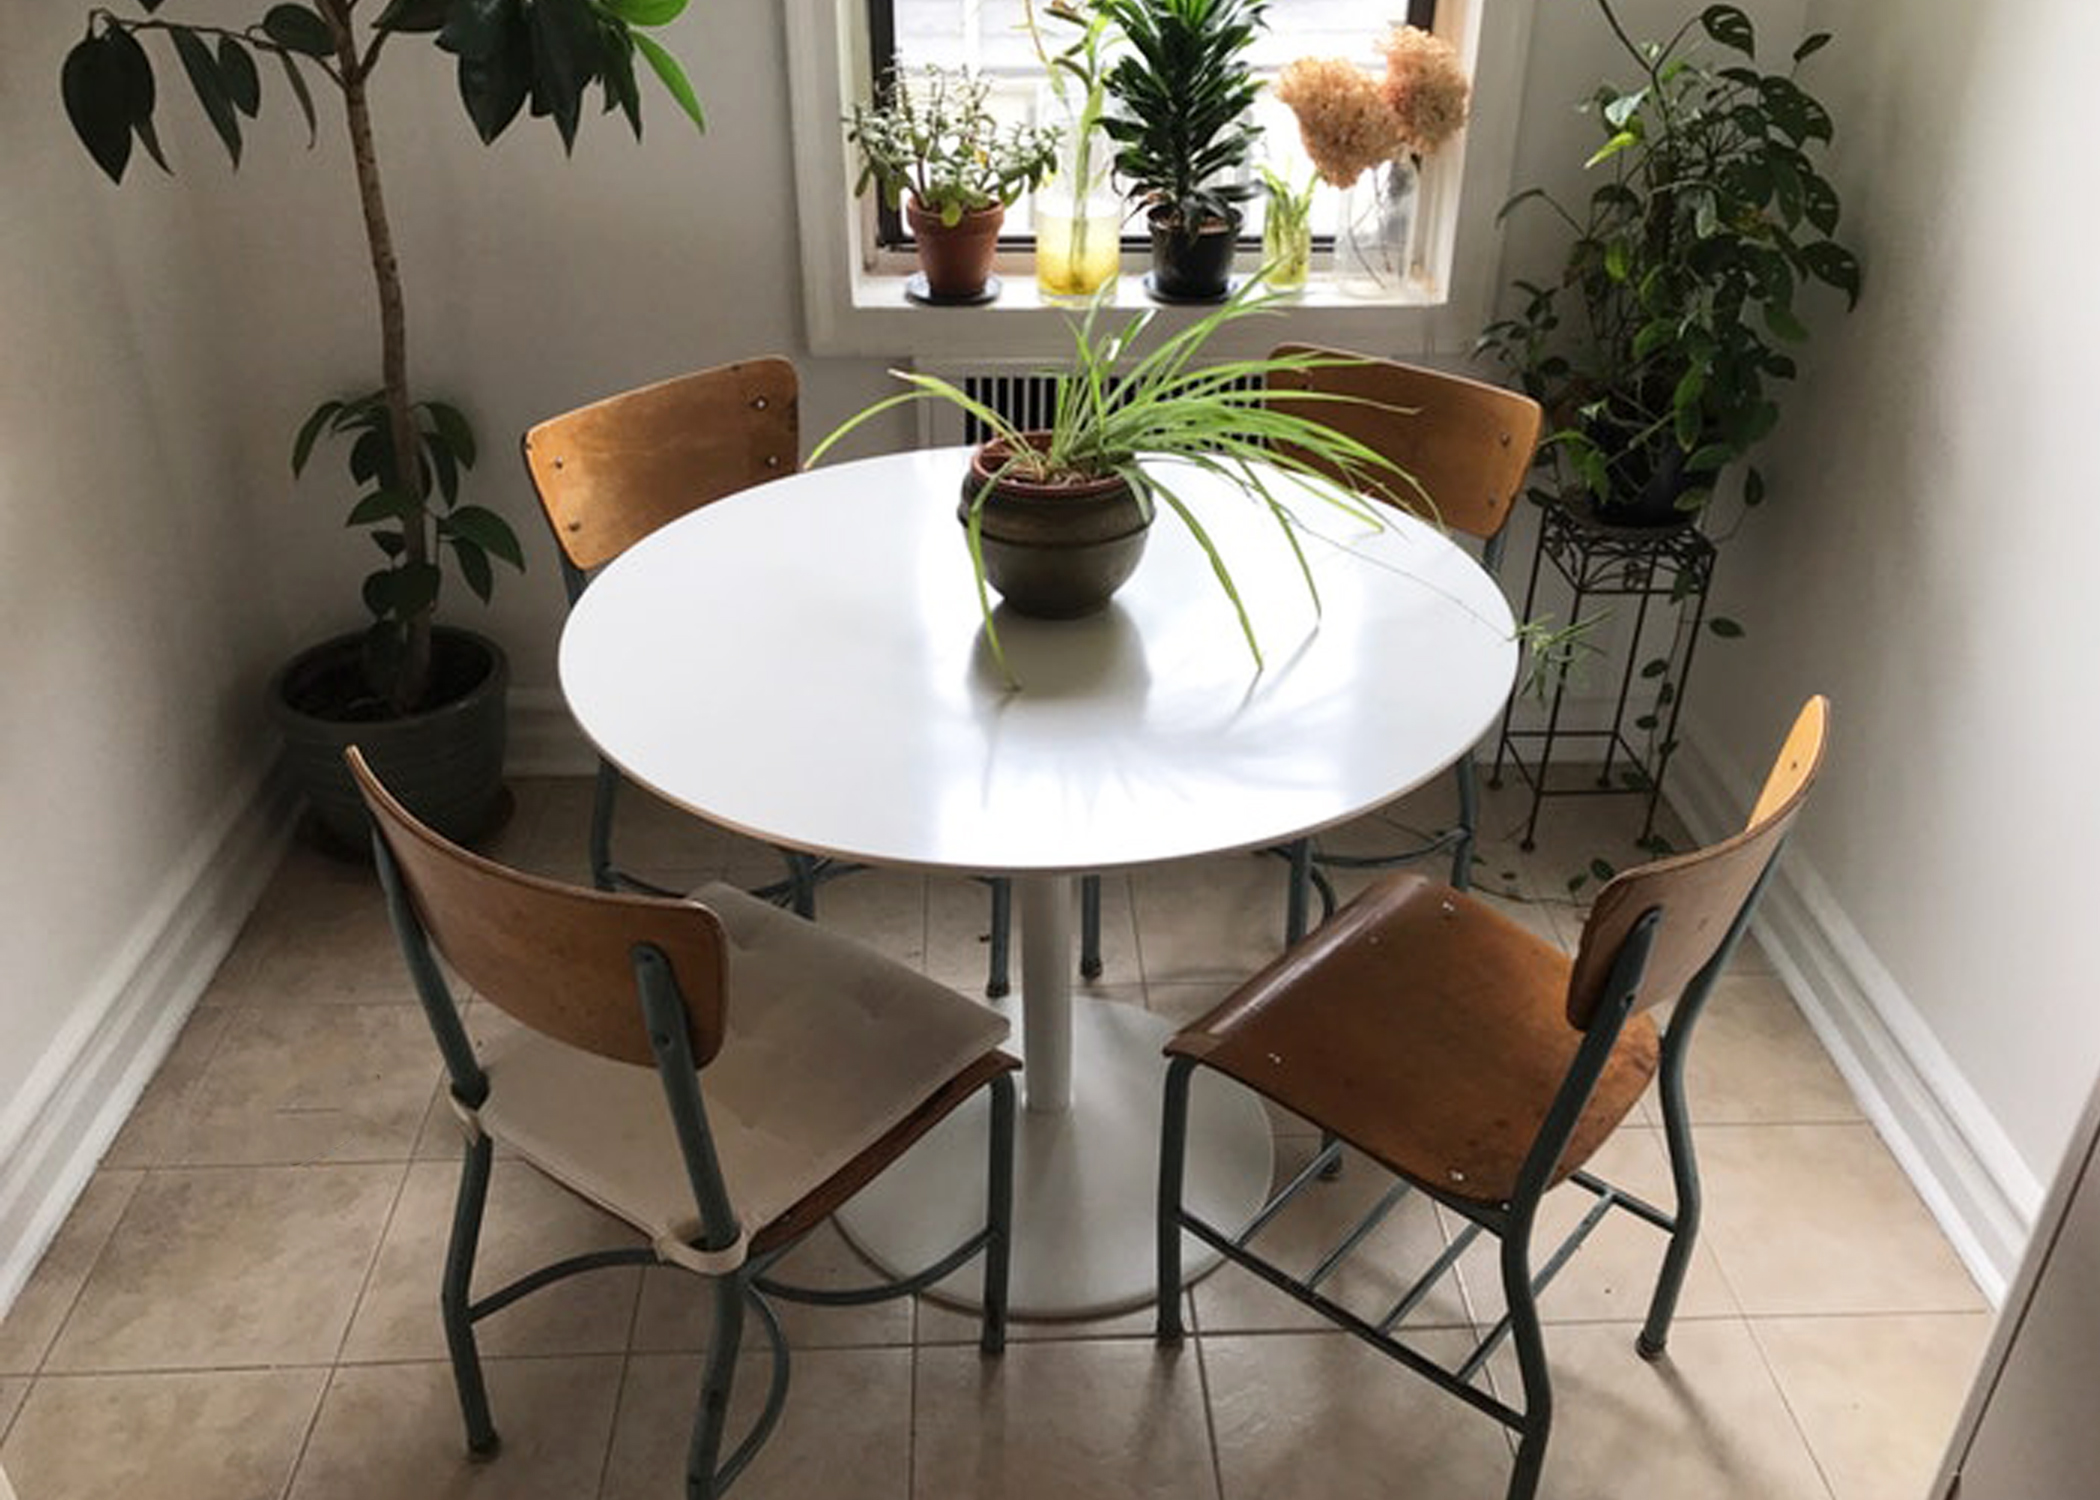 Awesome Daily Marketplace Deals Secondhand Cb2 West Elm And More Caraccident5 Cool Chair Designs And Ideas Caraccident5Info